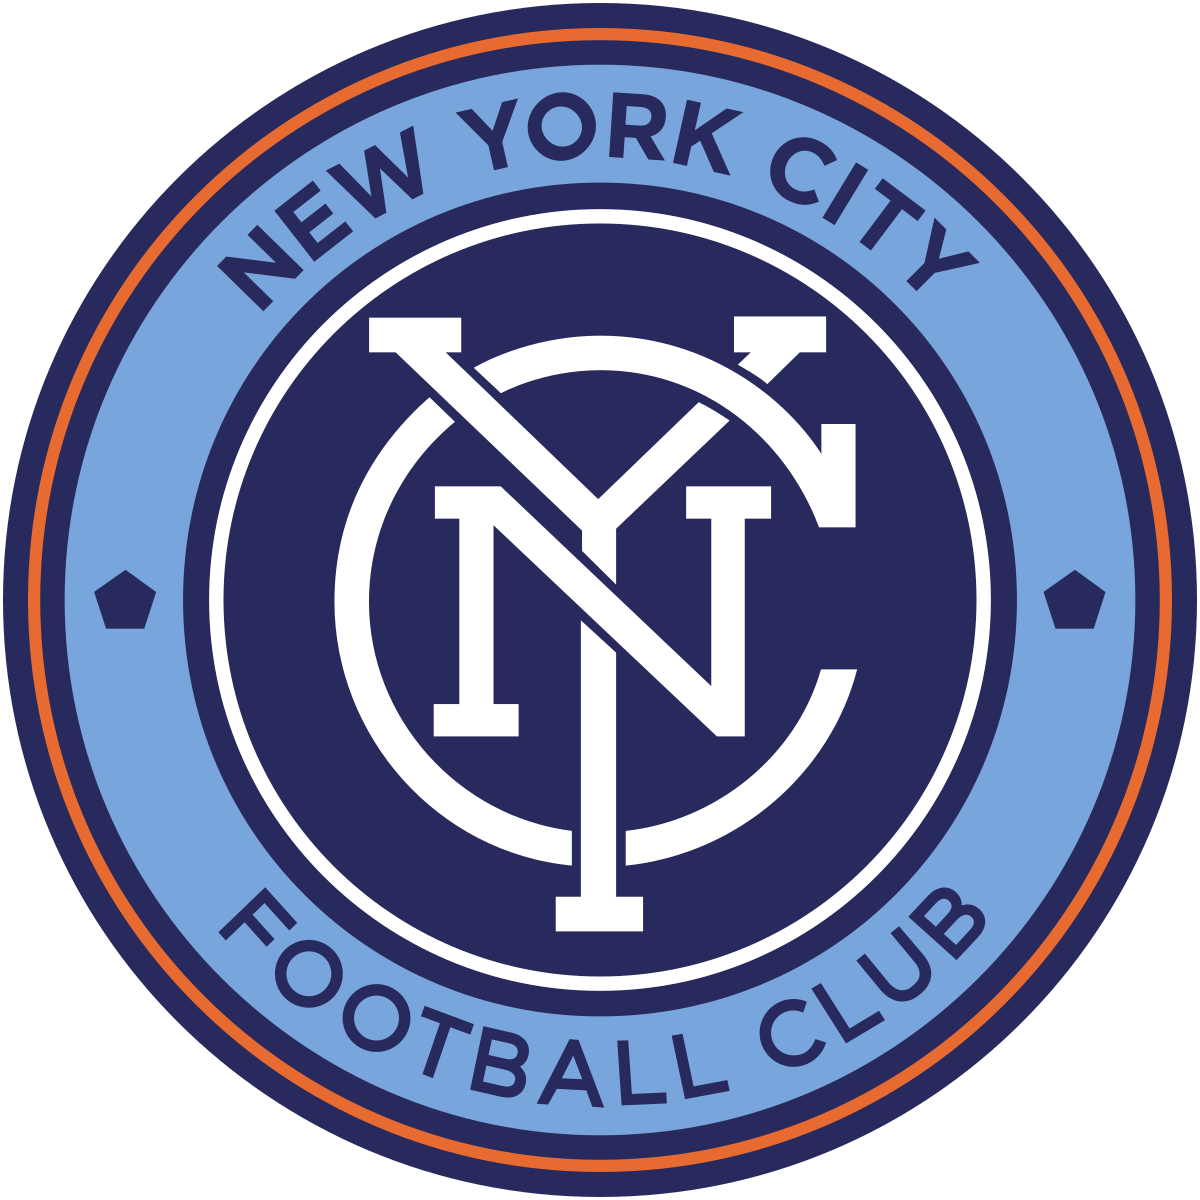 NYCFC Announces Latest Support For South Bronx During CoViD-19